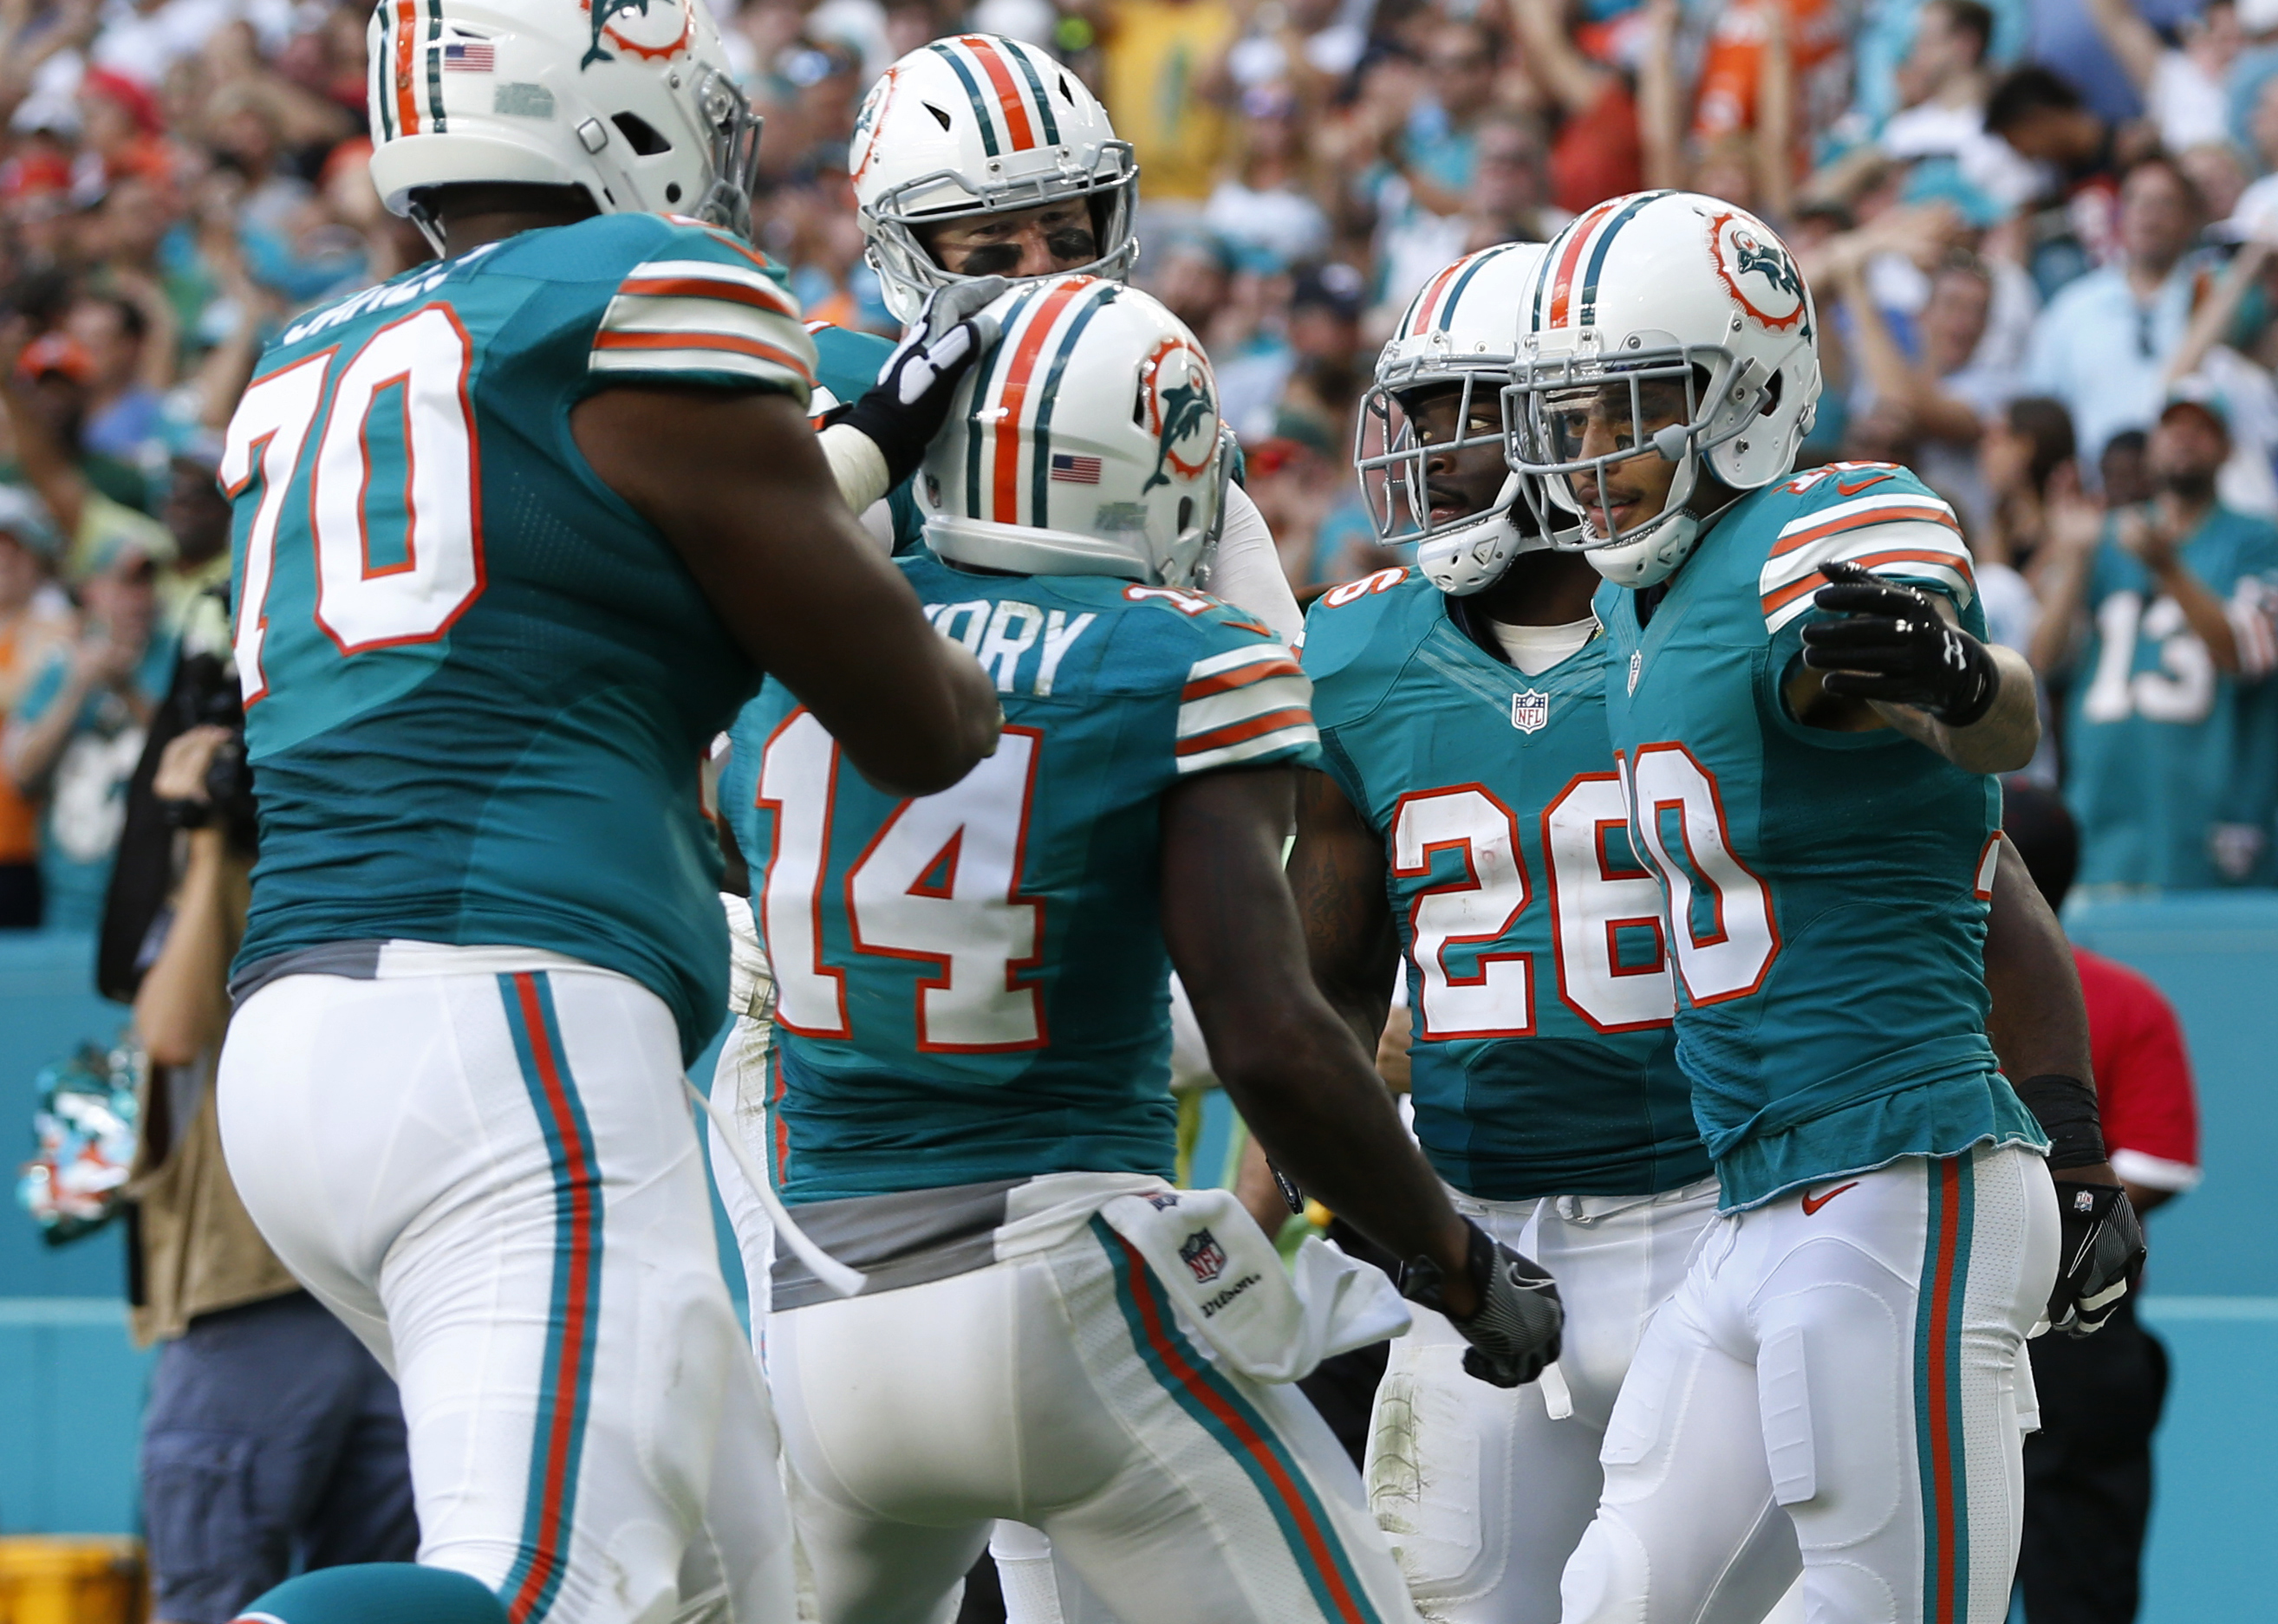 Miami Dolphins tackle Ja'Wuan James (70), and wide receiver Jarvis Landry (14) congratulate wide receiver Kenny Stills (10), after Stills scored a touchdown, during the second half of an NFL football game against the San Francisco 49ers, Sunday, Nov. 27,